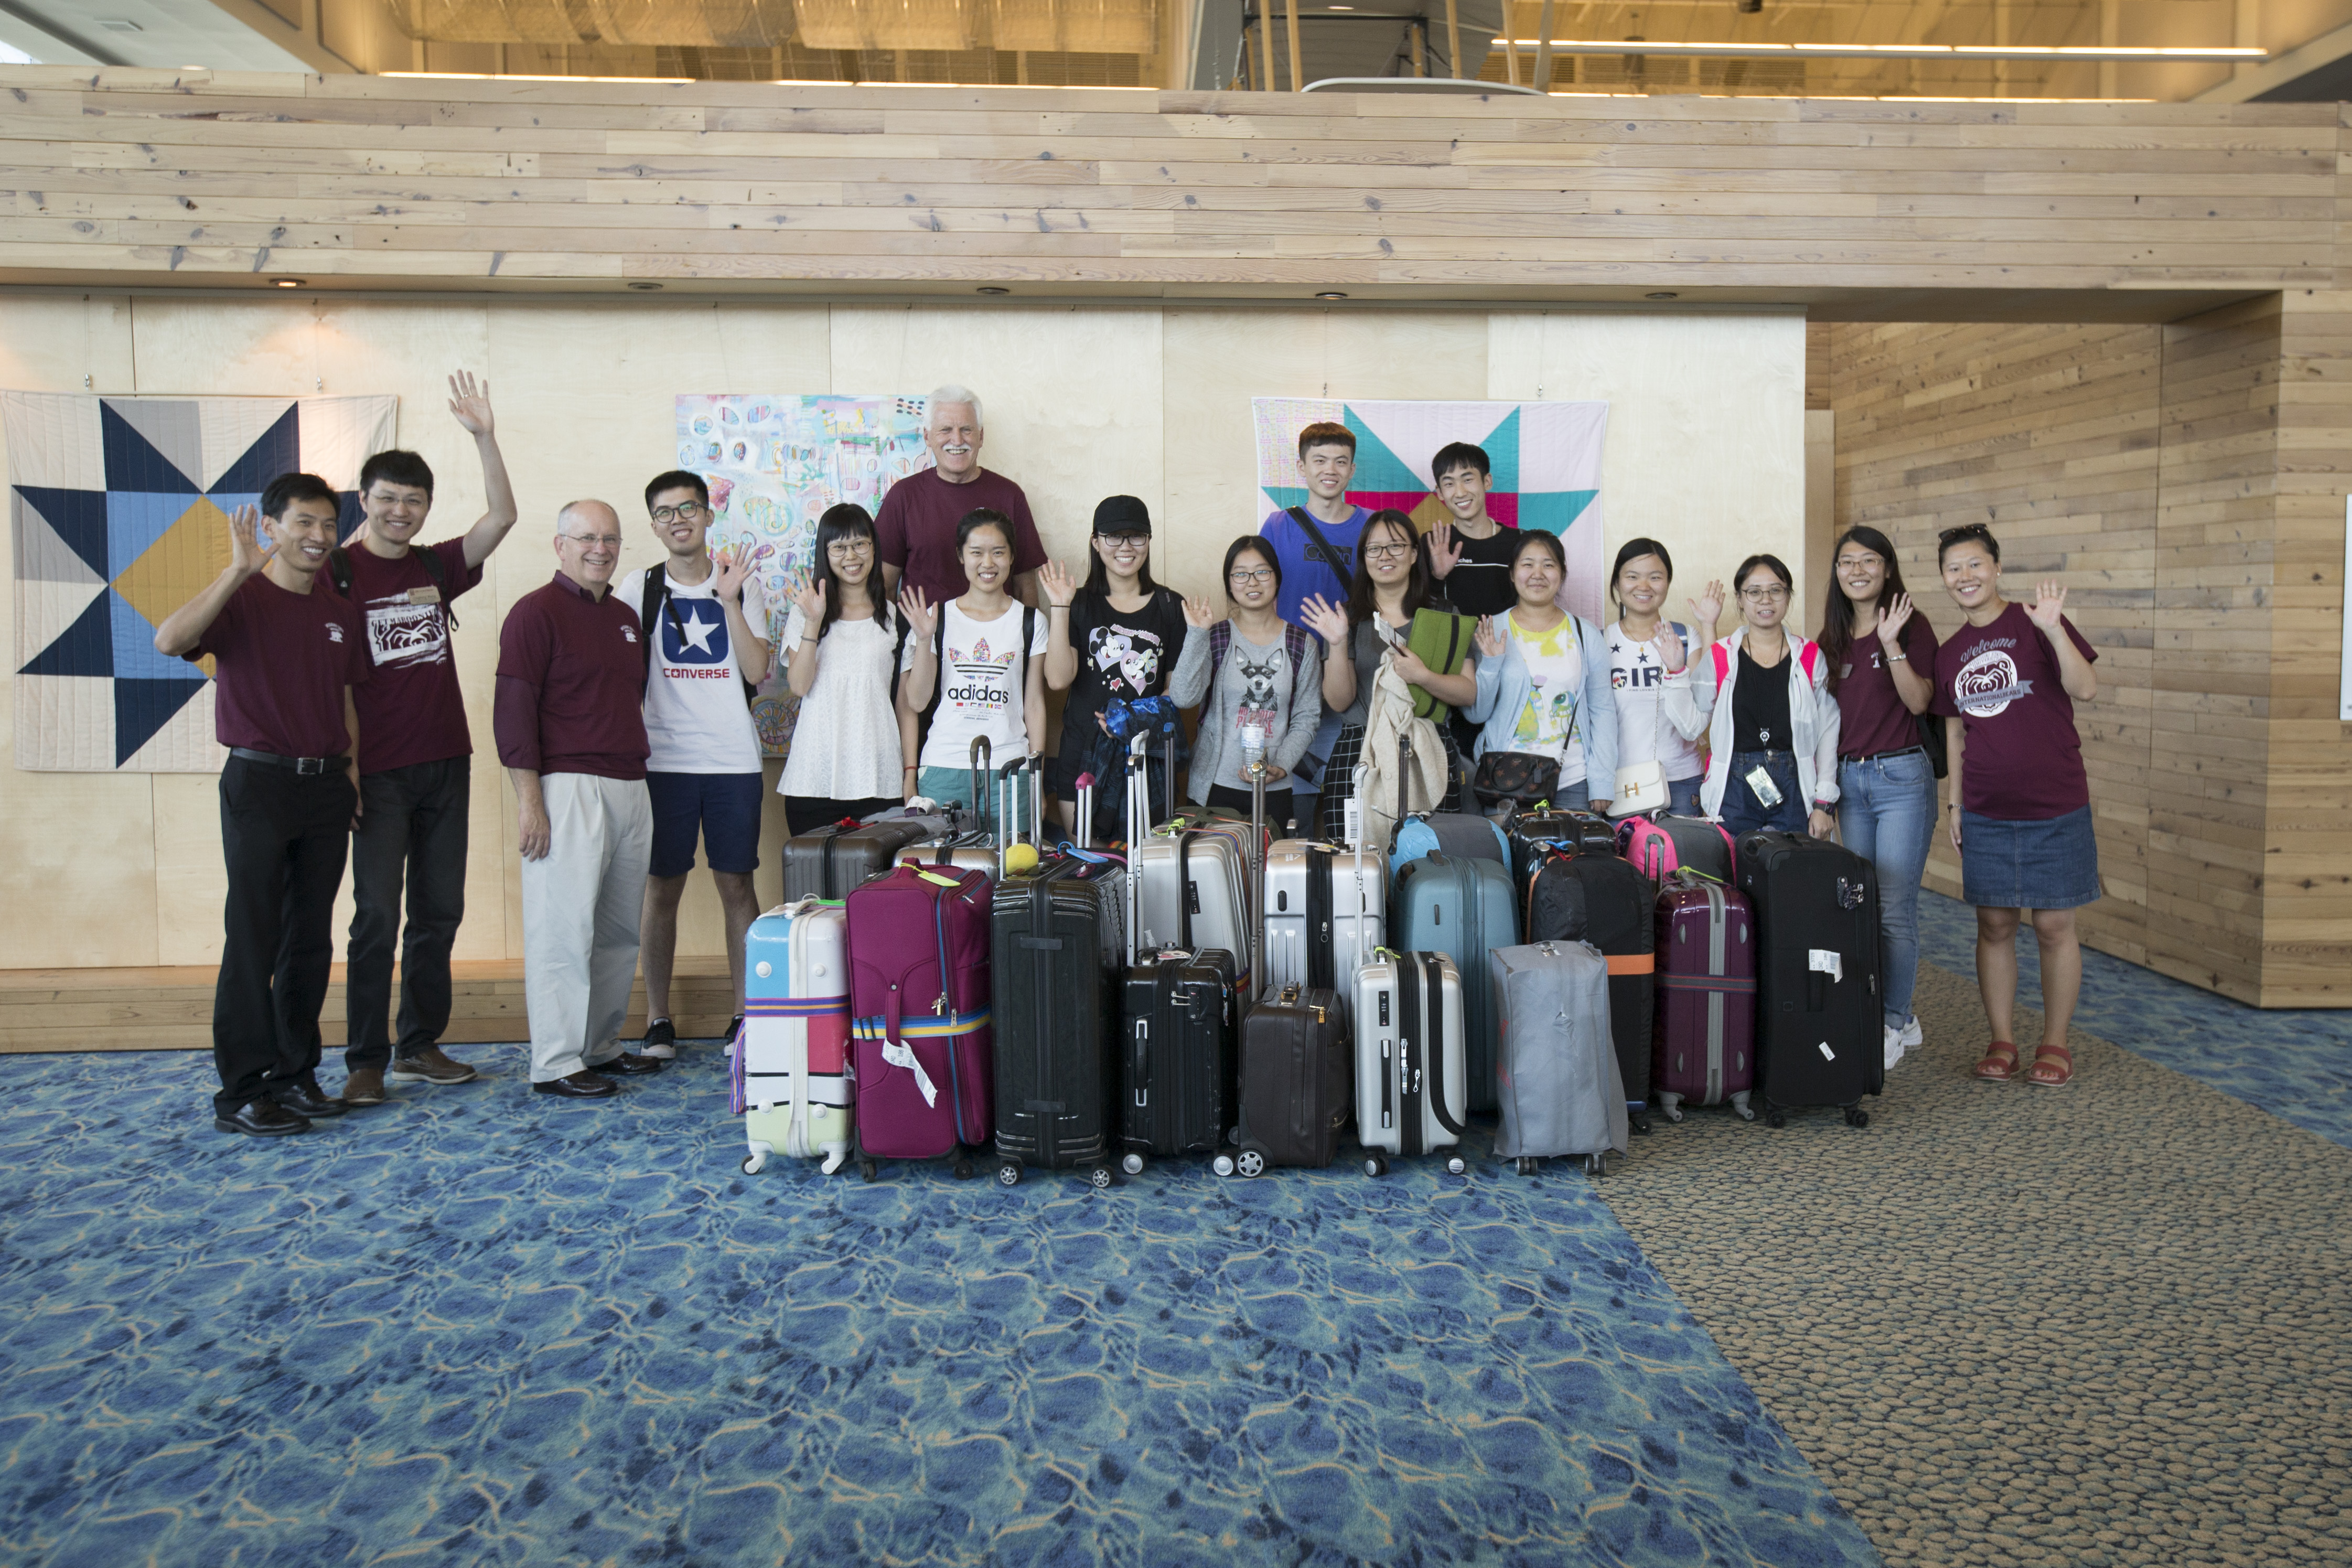 A group of students pose with luggage at the airport